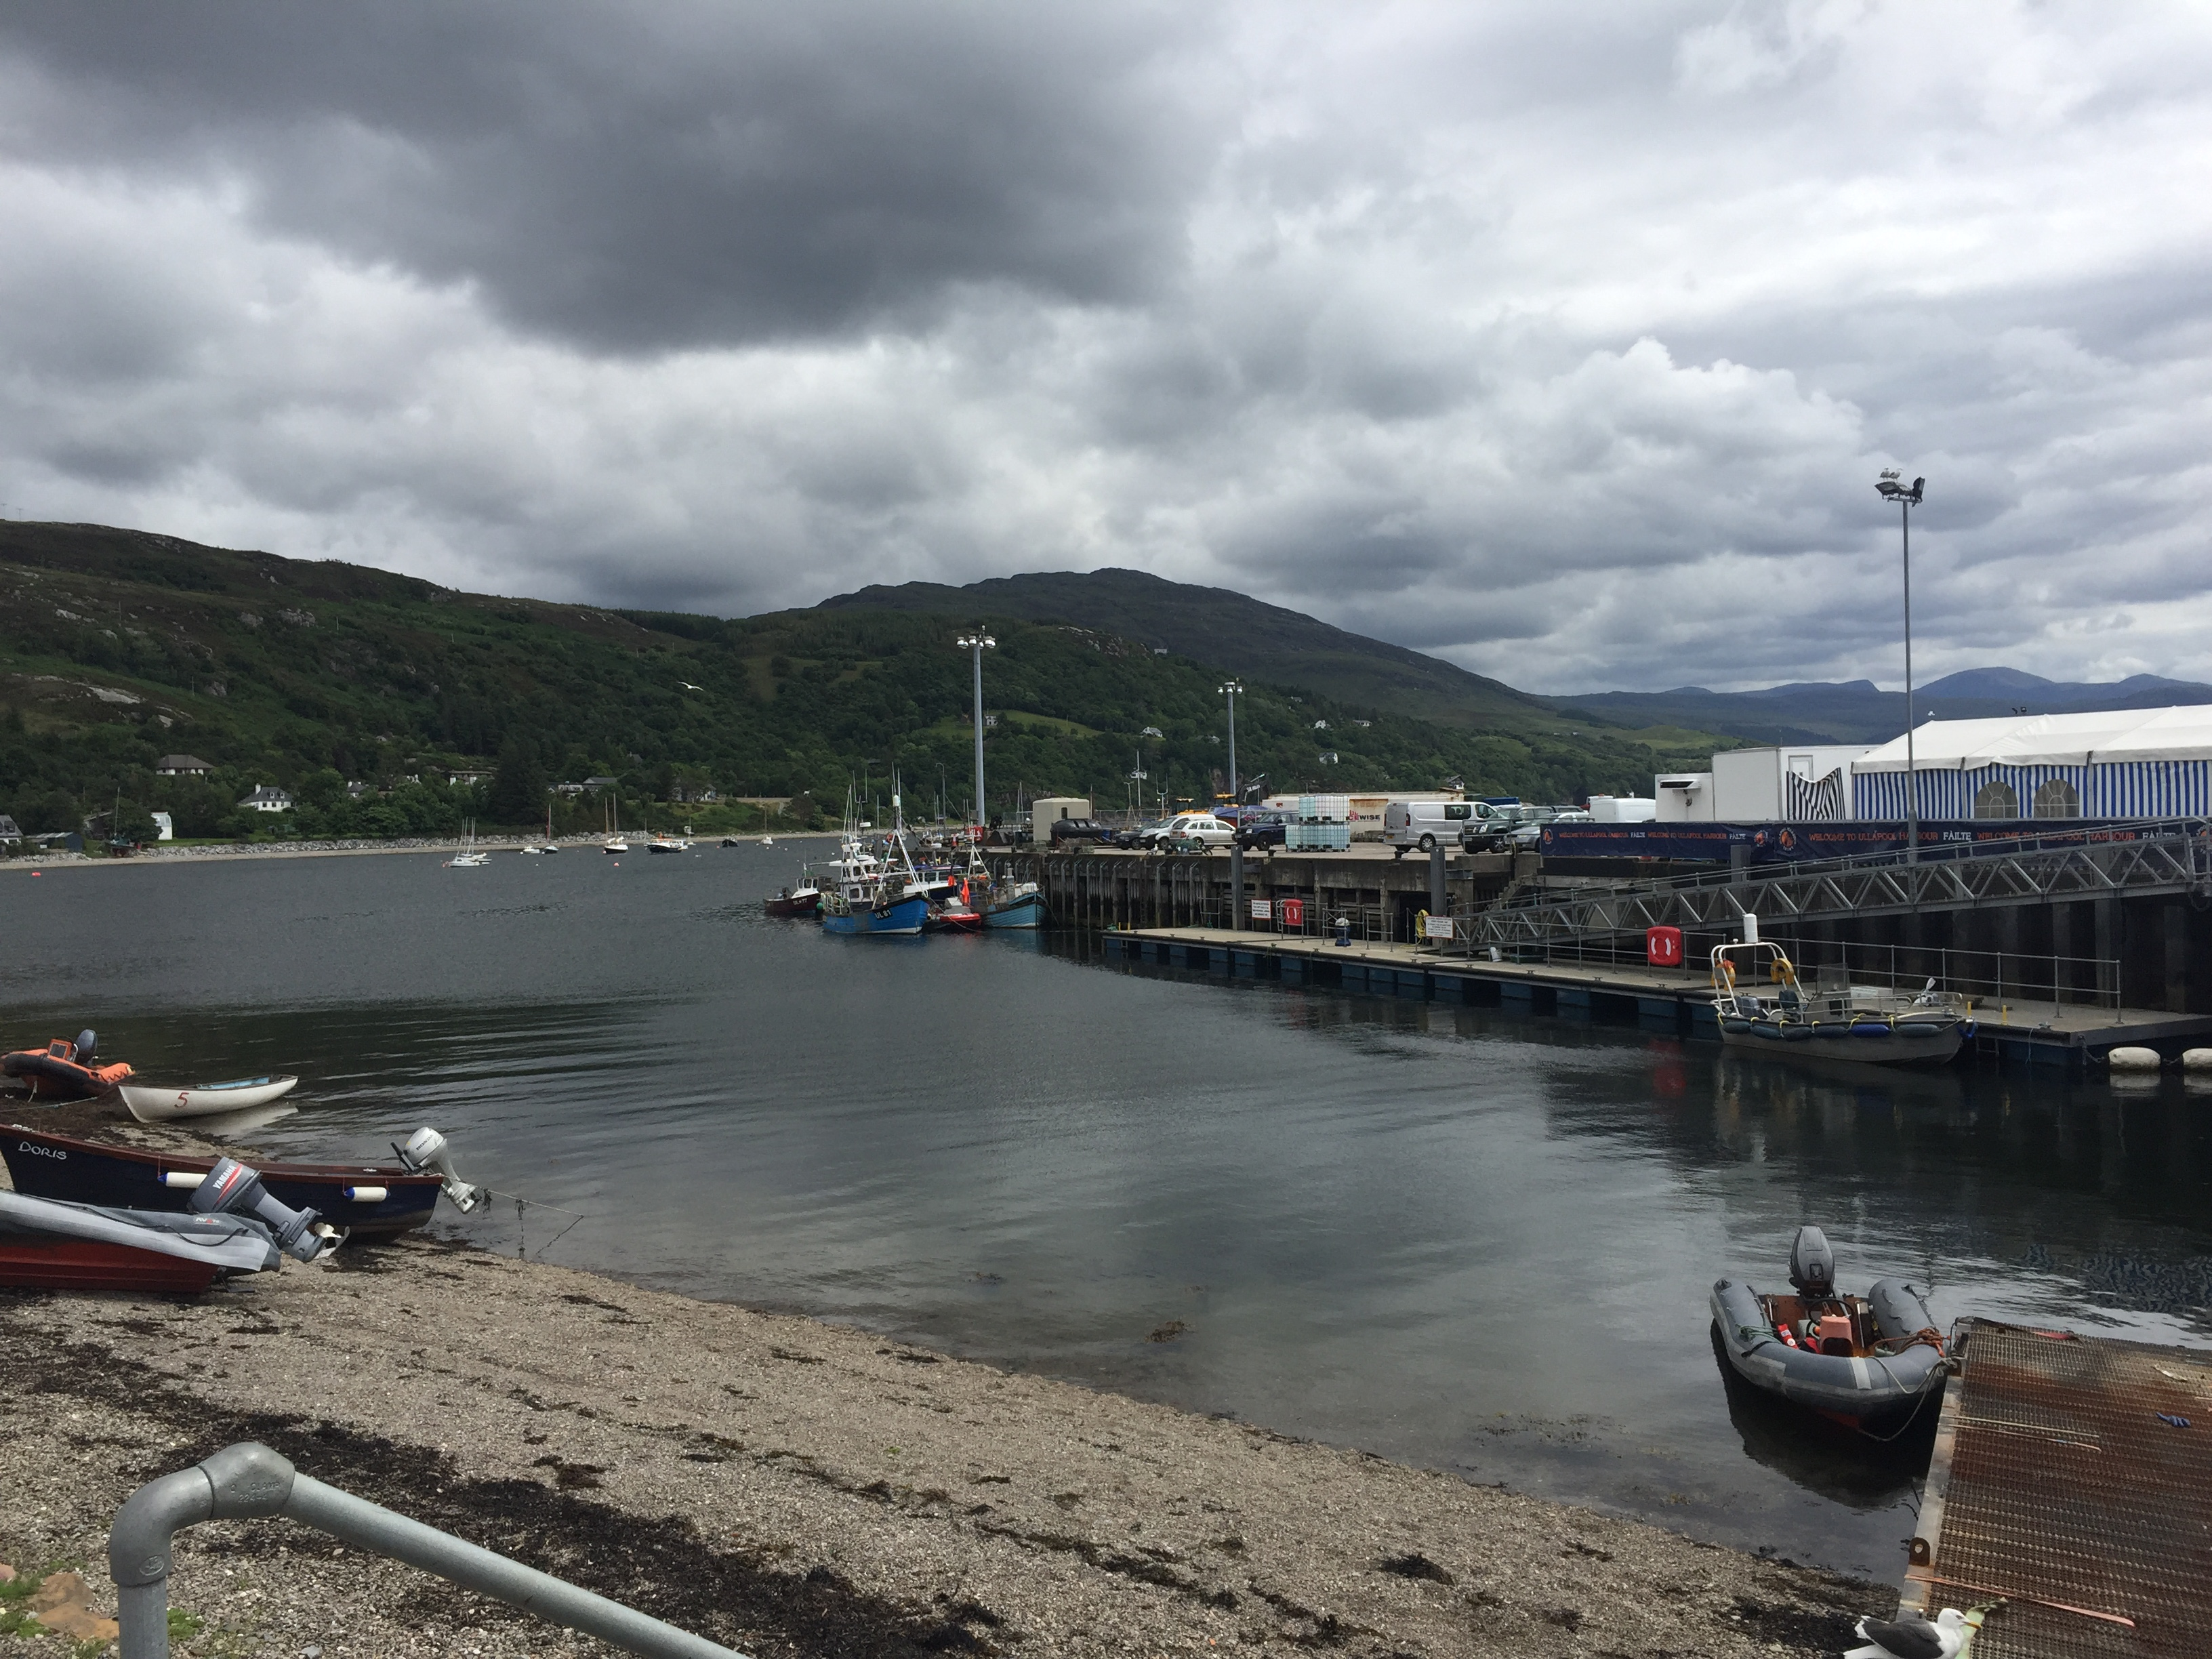 Ullapool harbour. Take the ferry from here to Stornoway.